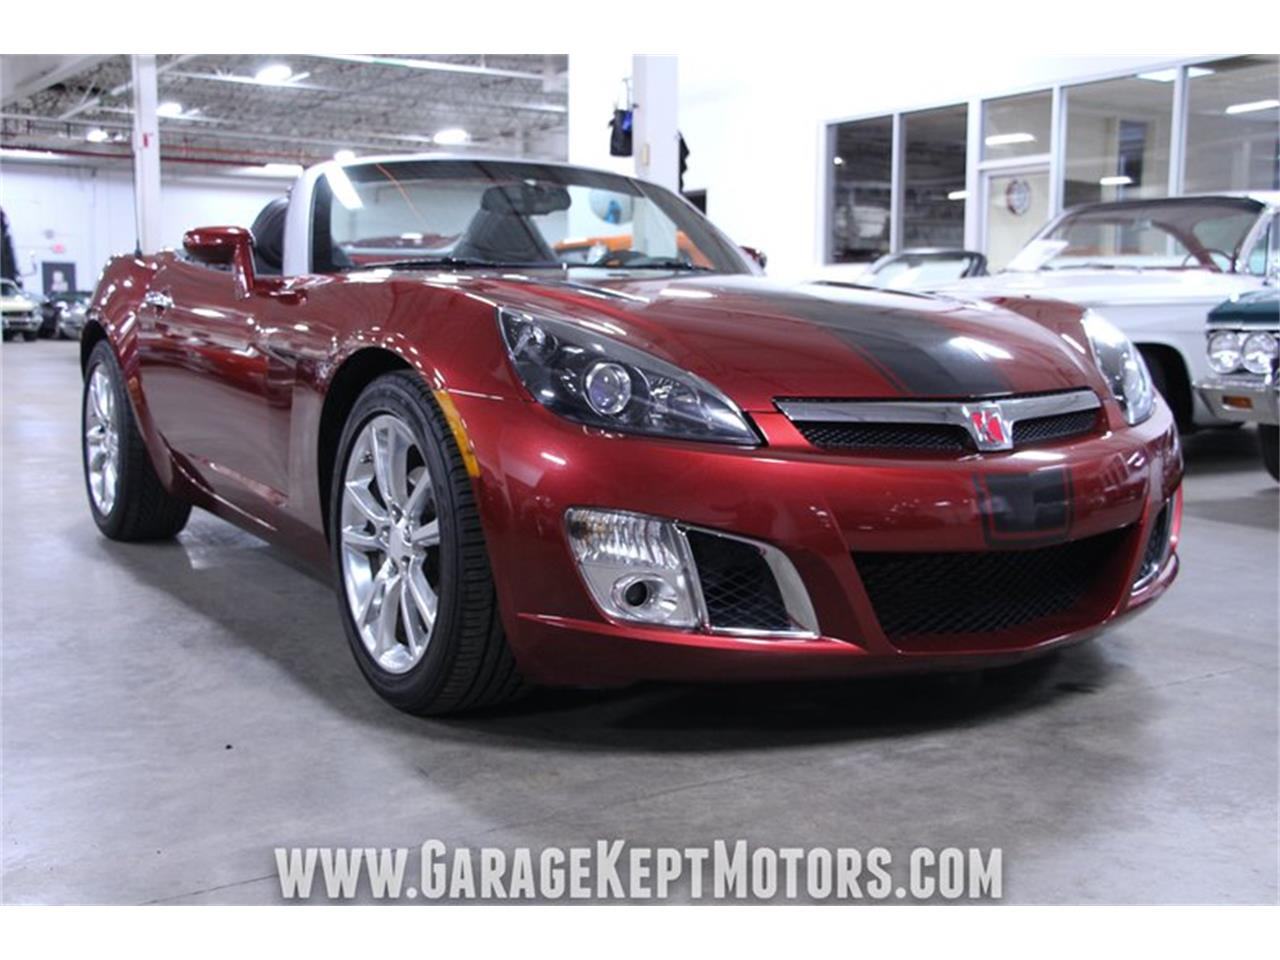 2009 Saturn Sky for sale in Grand Rapids, MI – photo 29